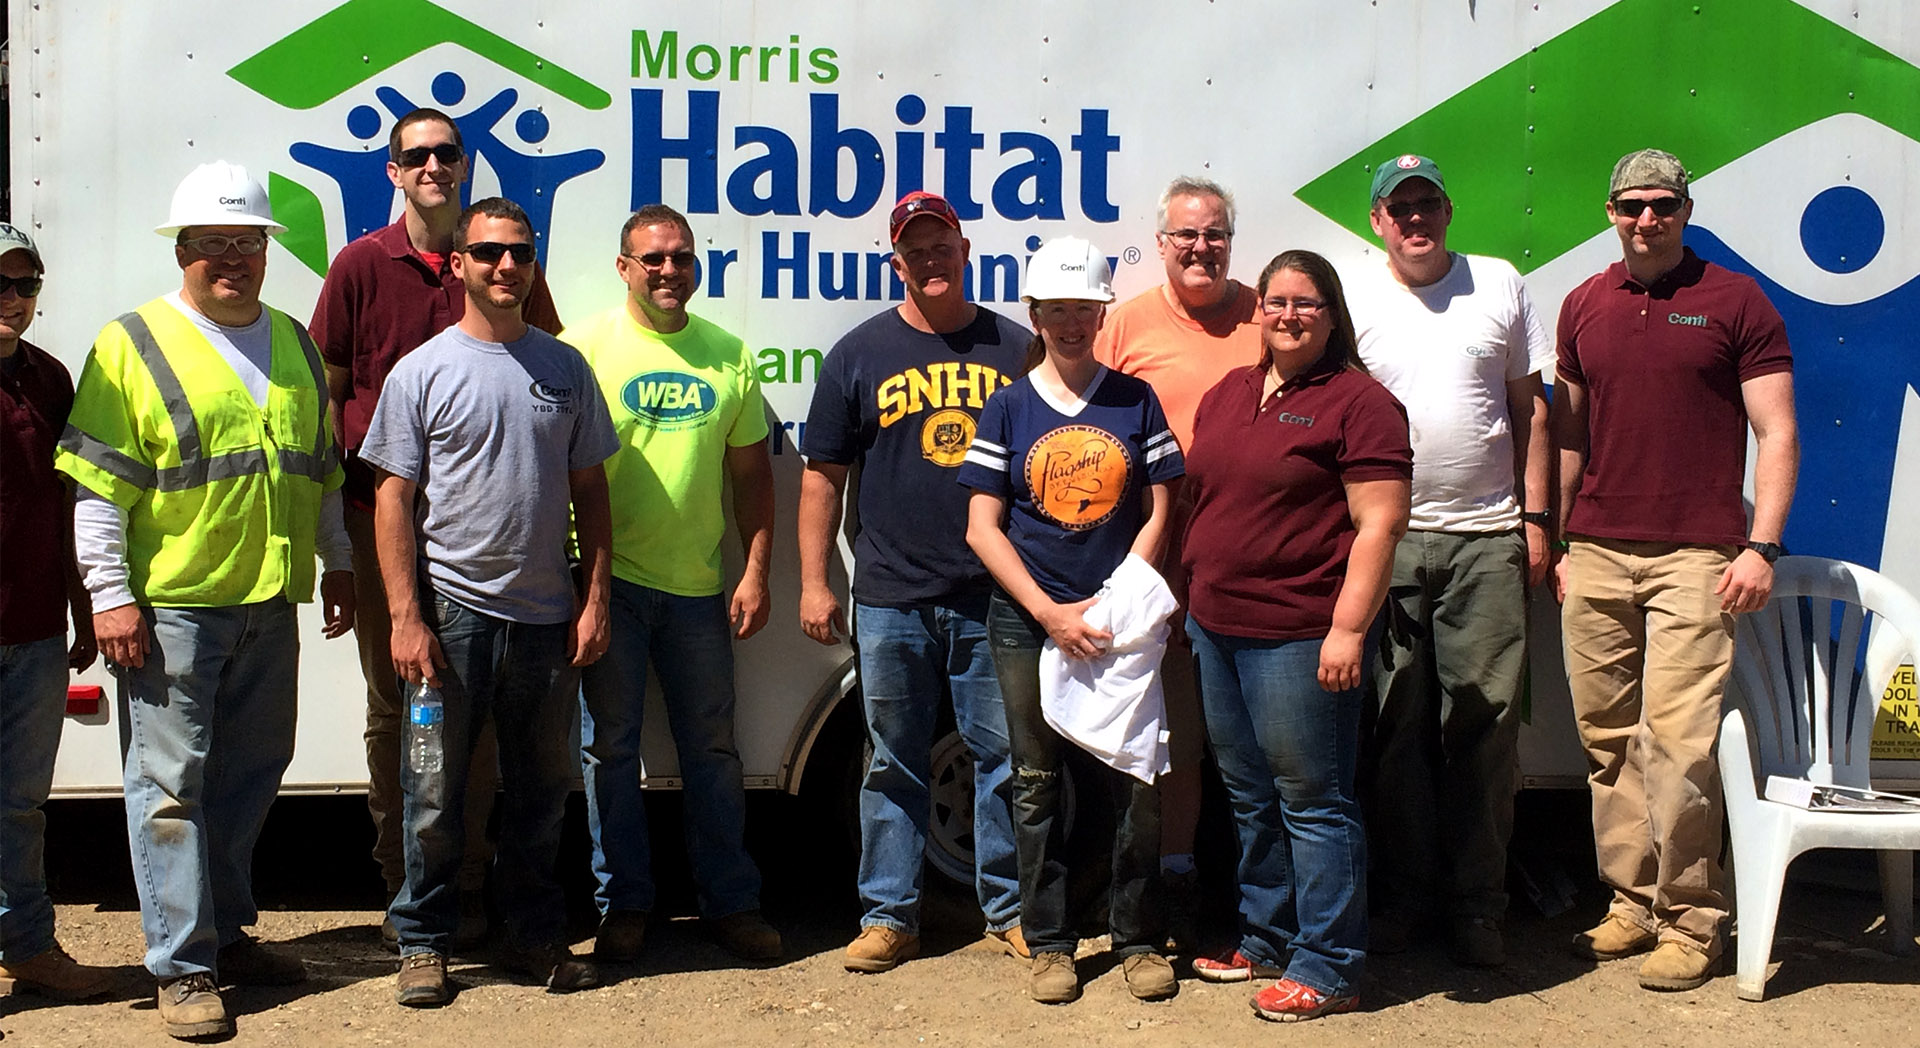 Habitat for Humanity Welcomes Conti Crews